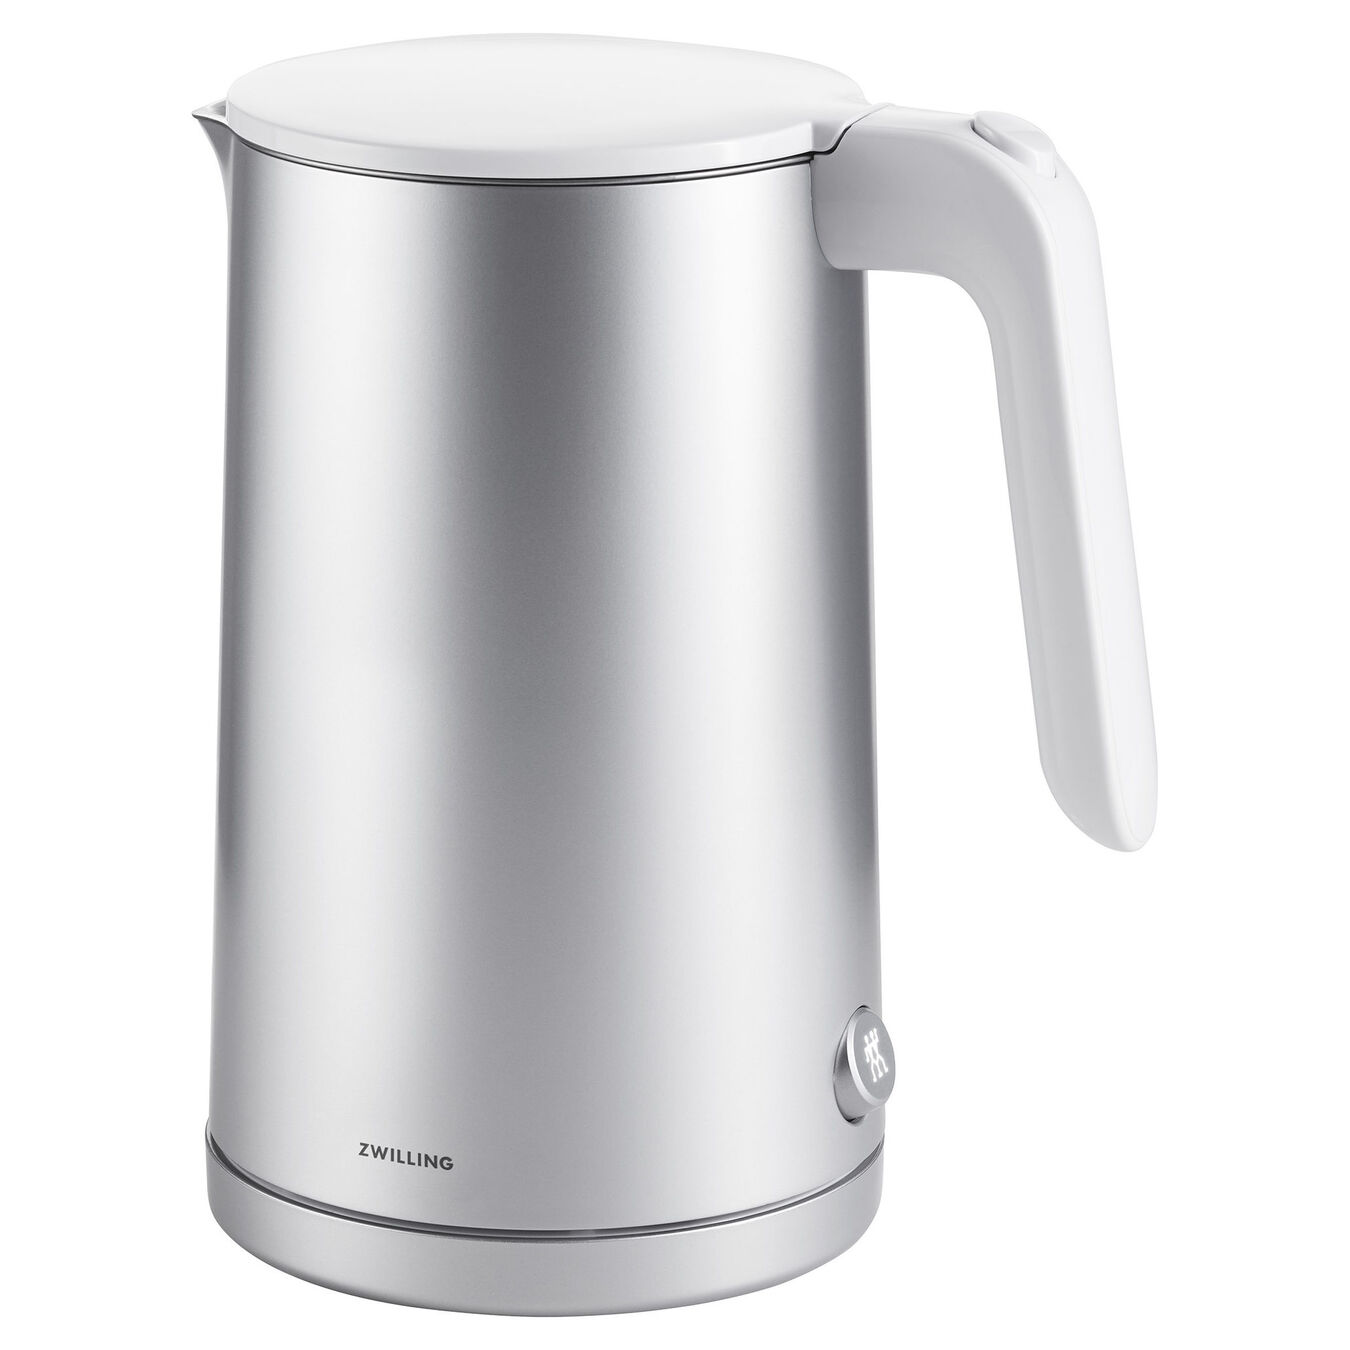 Cool Touch Kettle,,large 4